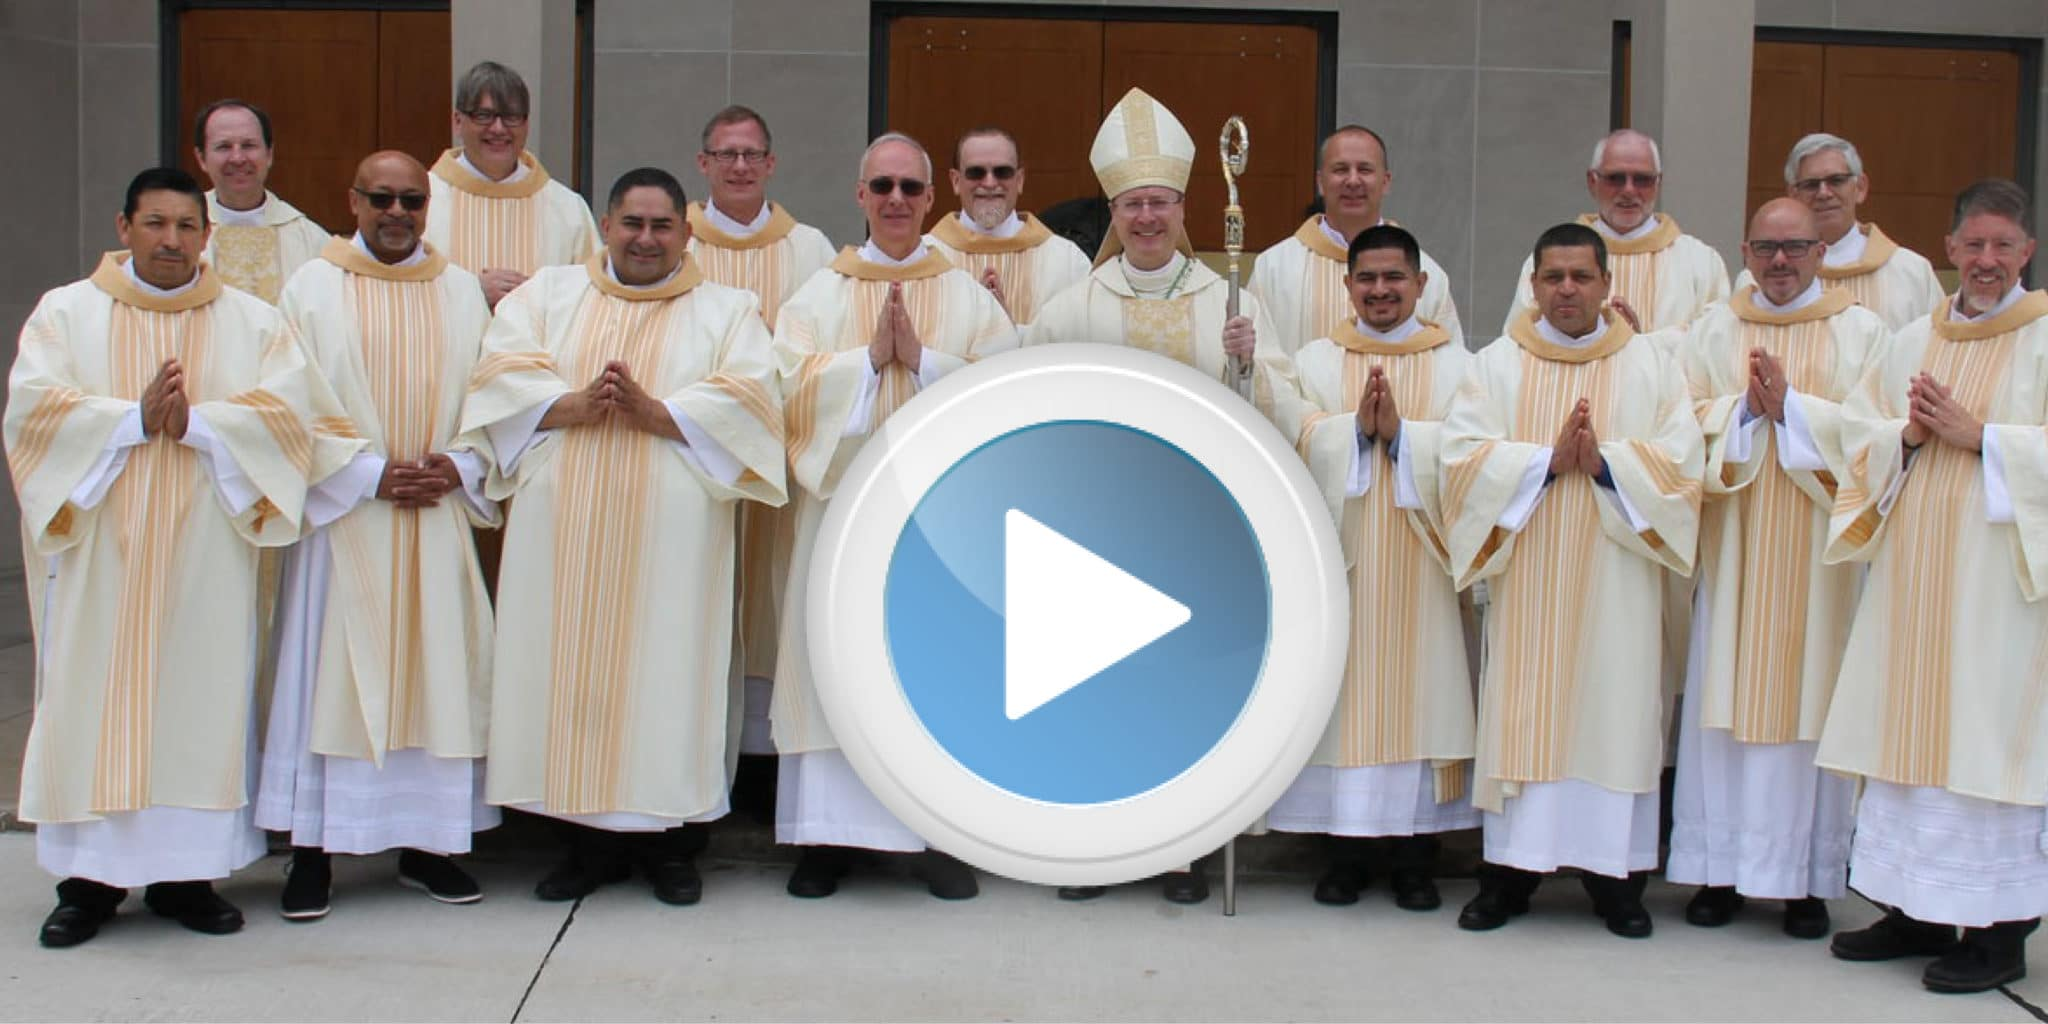 See a video of the ordination Mass on May 4, 2019.